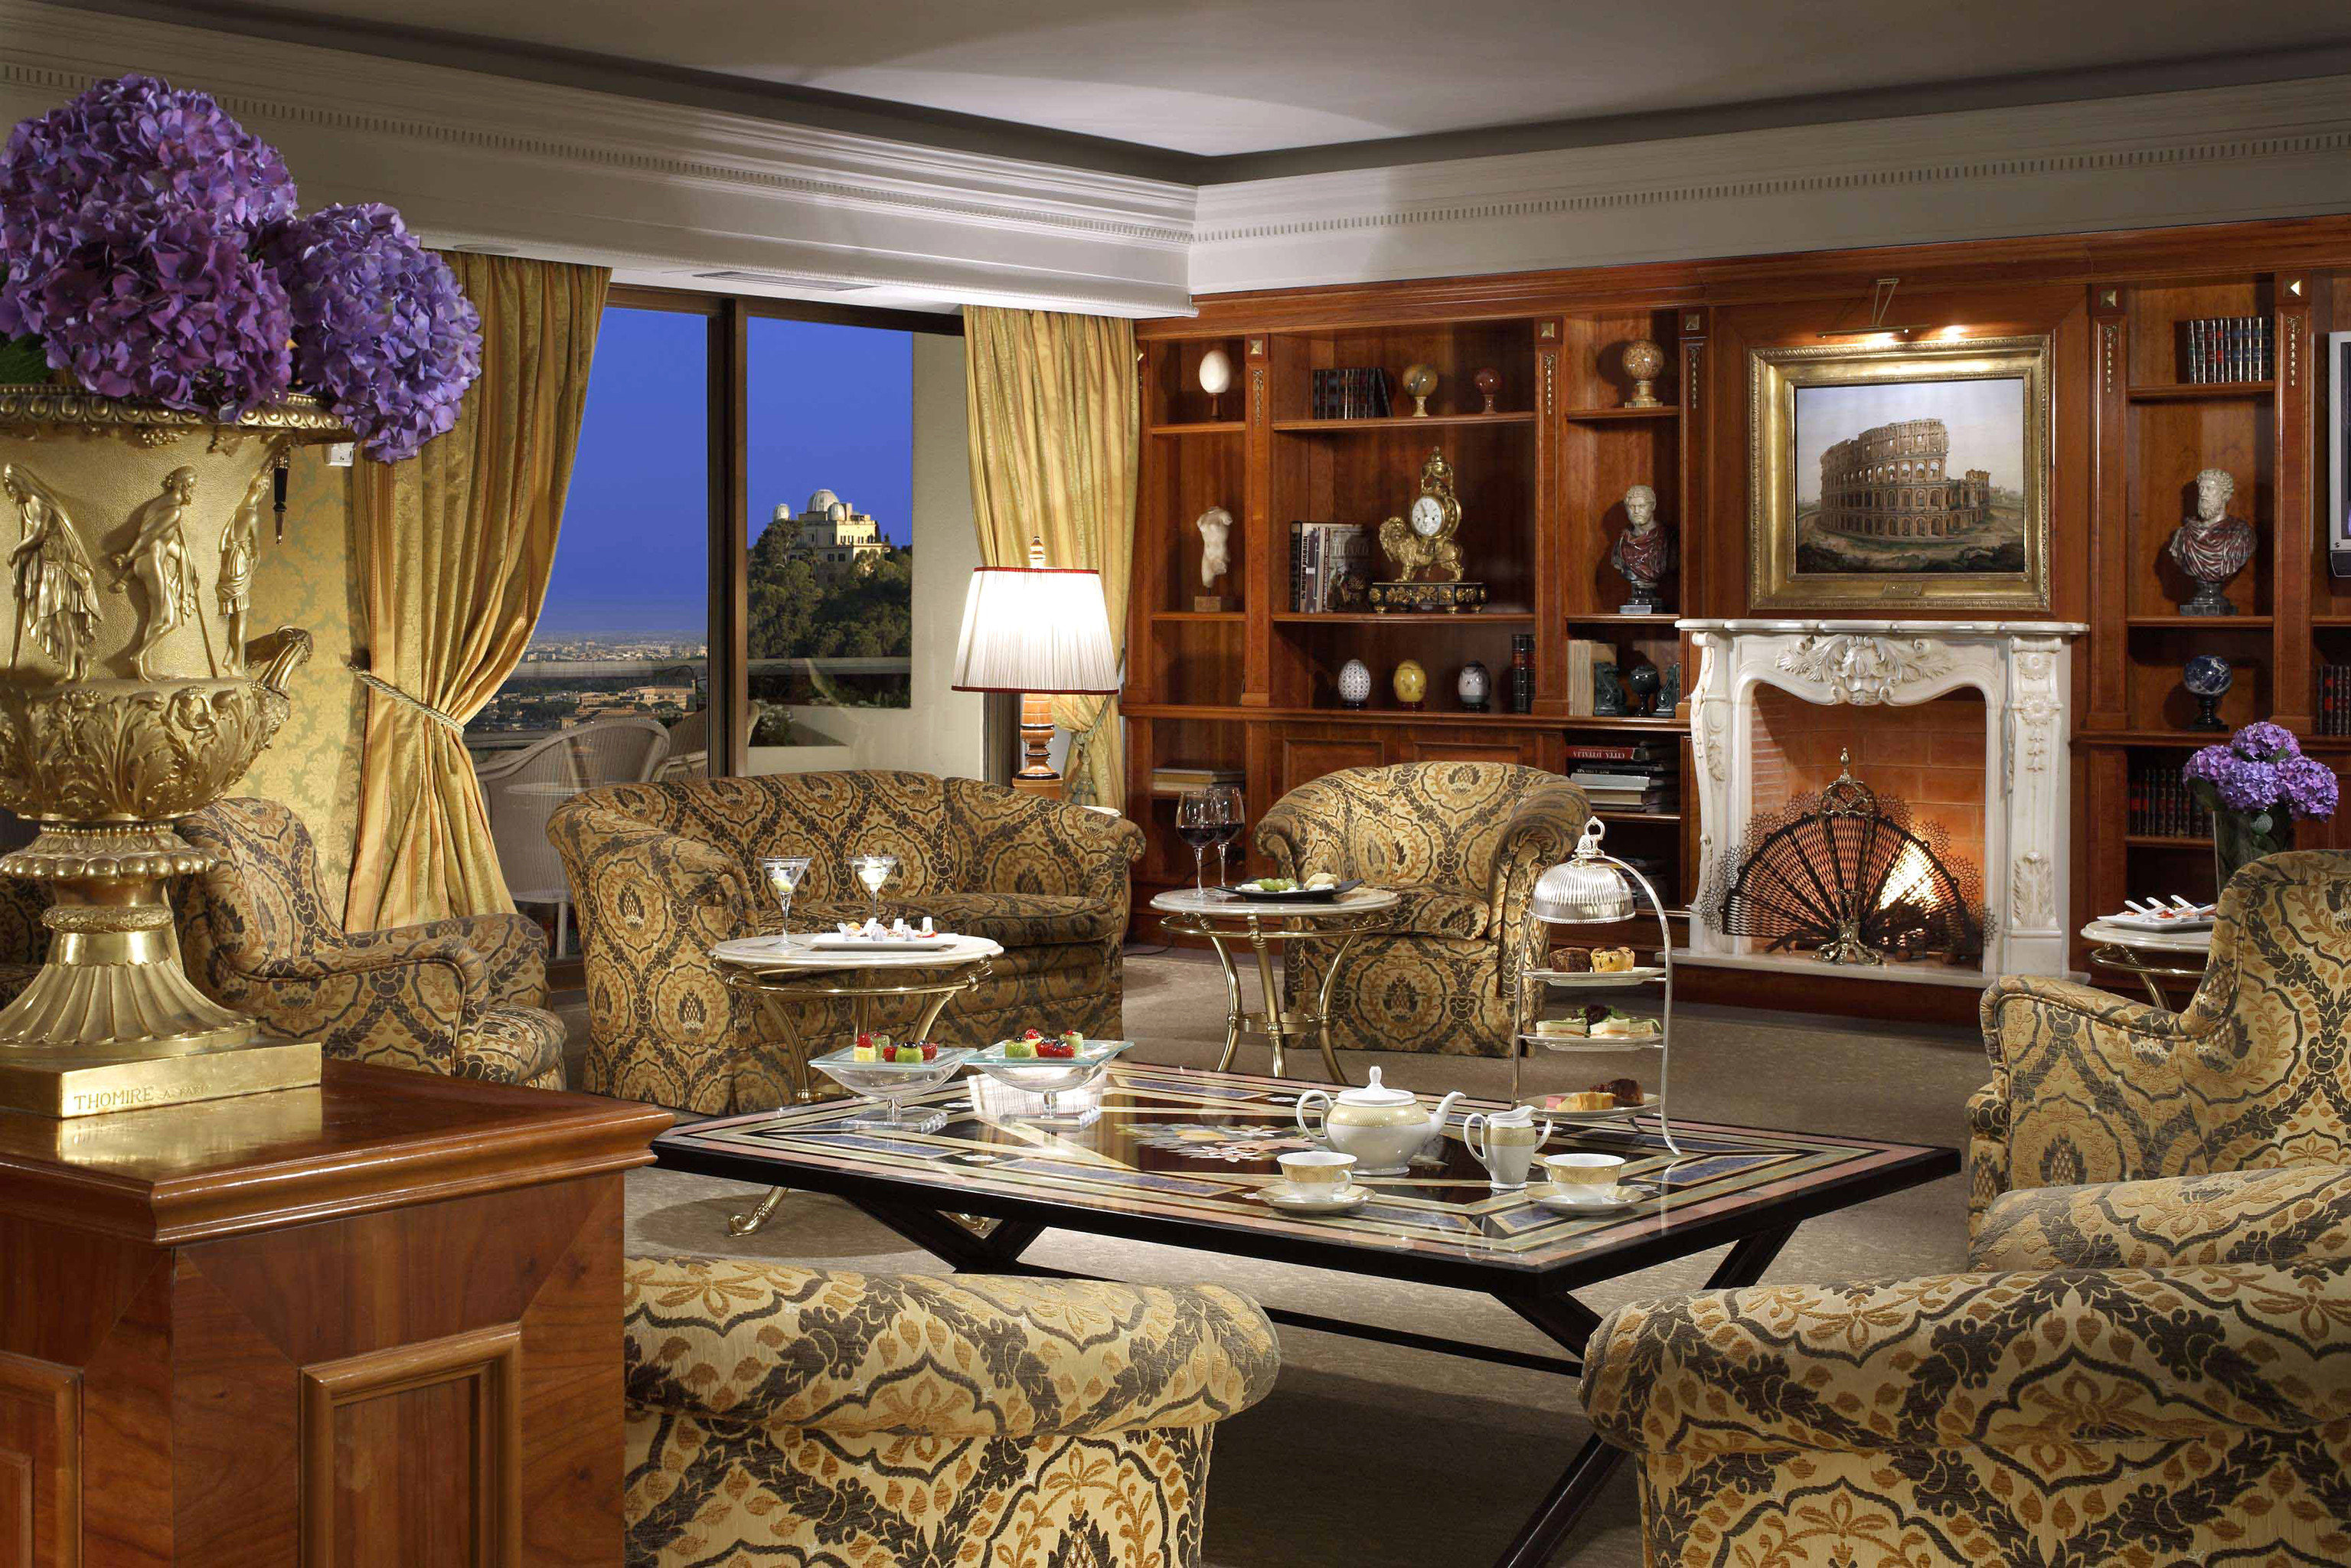 Boutique Hotels City Elegant Italy Living Luxury Travel Rome Indoor Room Property Home